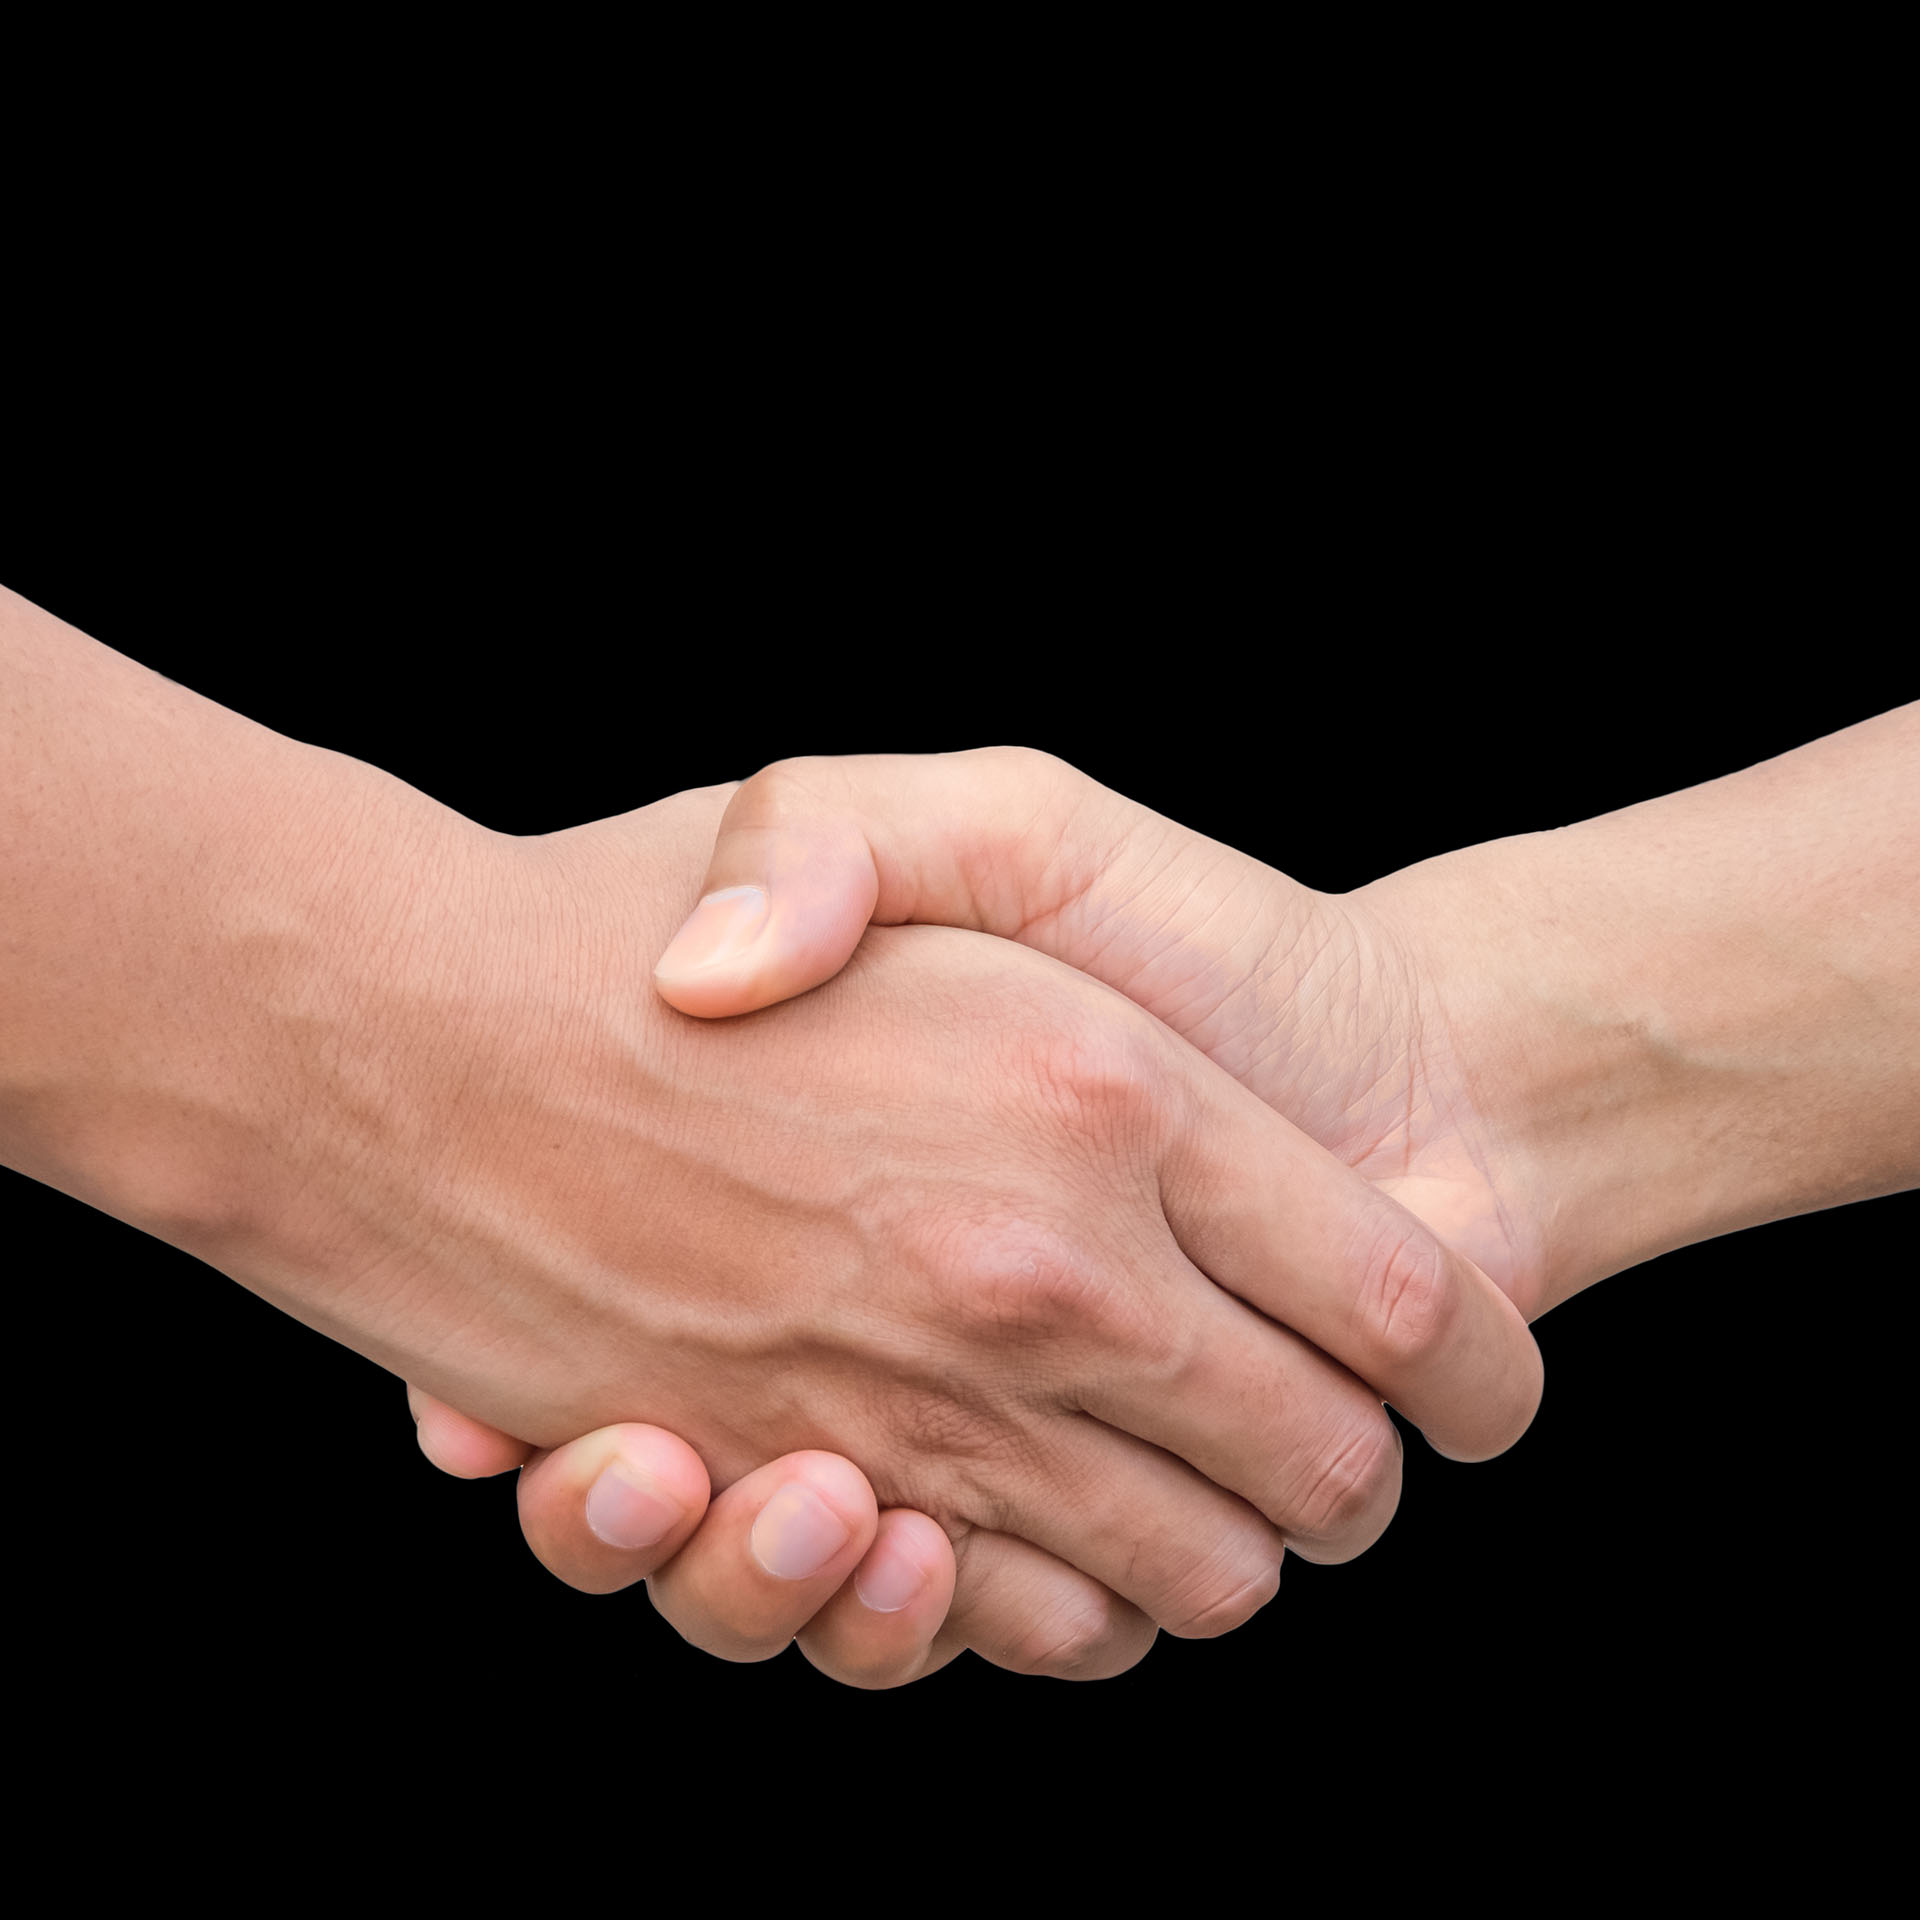 relationship, two people shaking hands